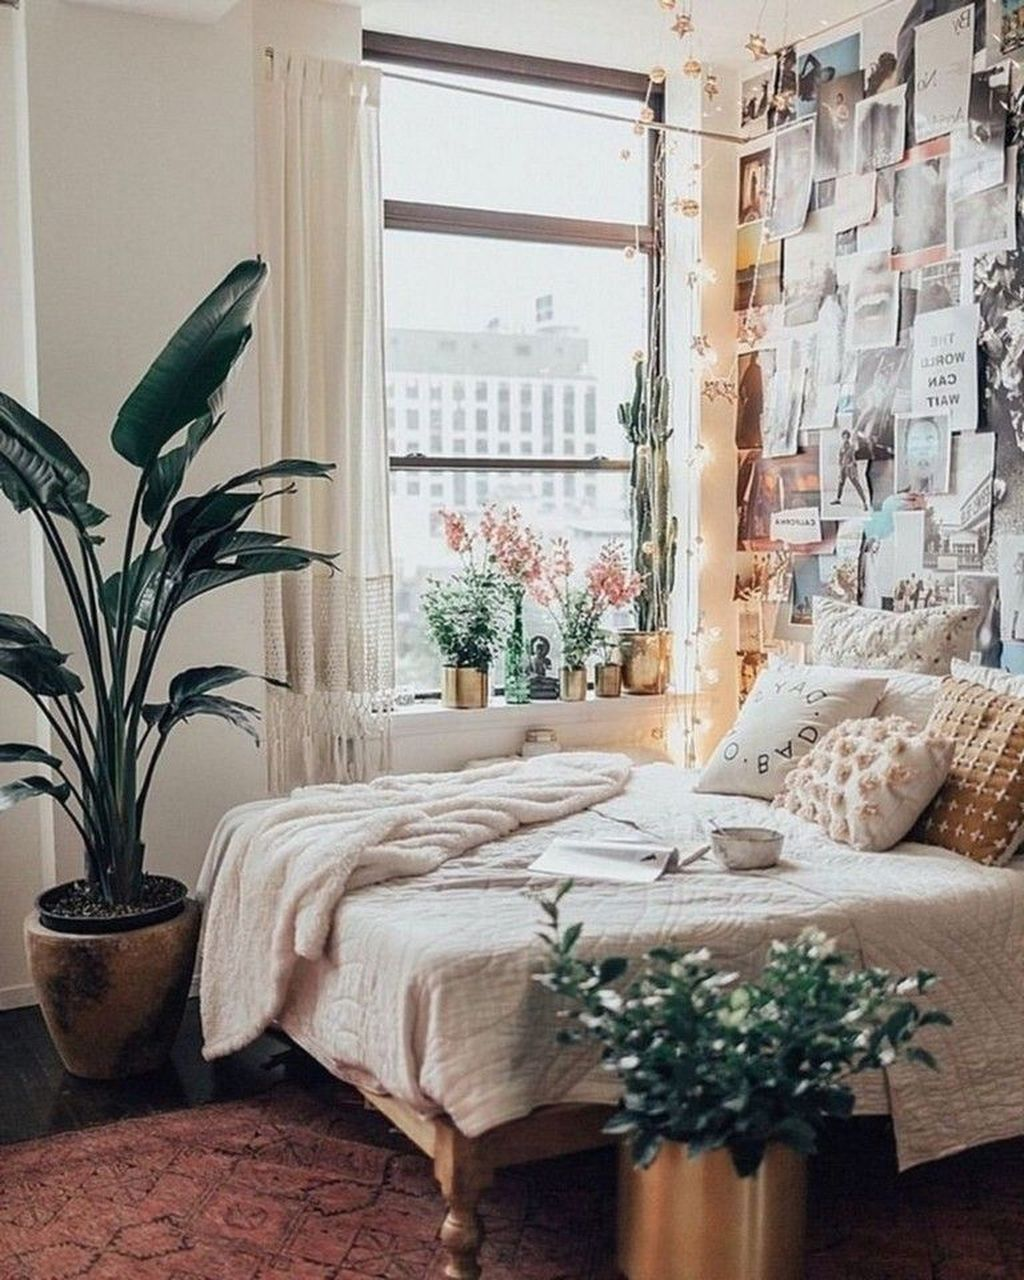 30 Affordable Bedroom Ideas For Apartment Affordable Bedroom